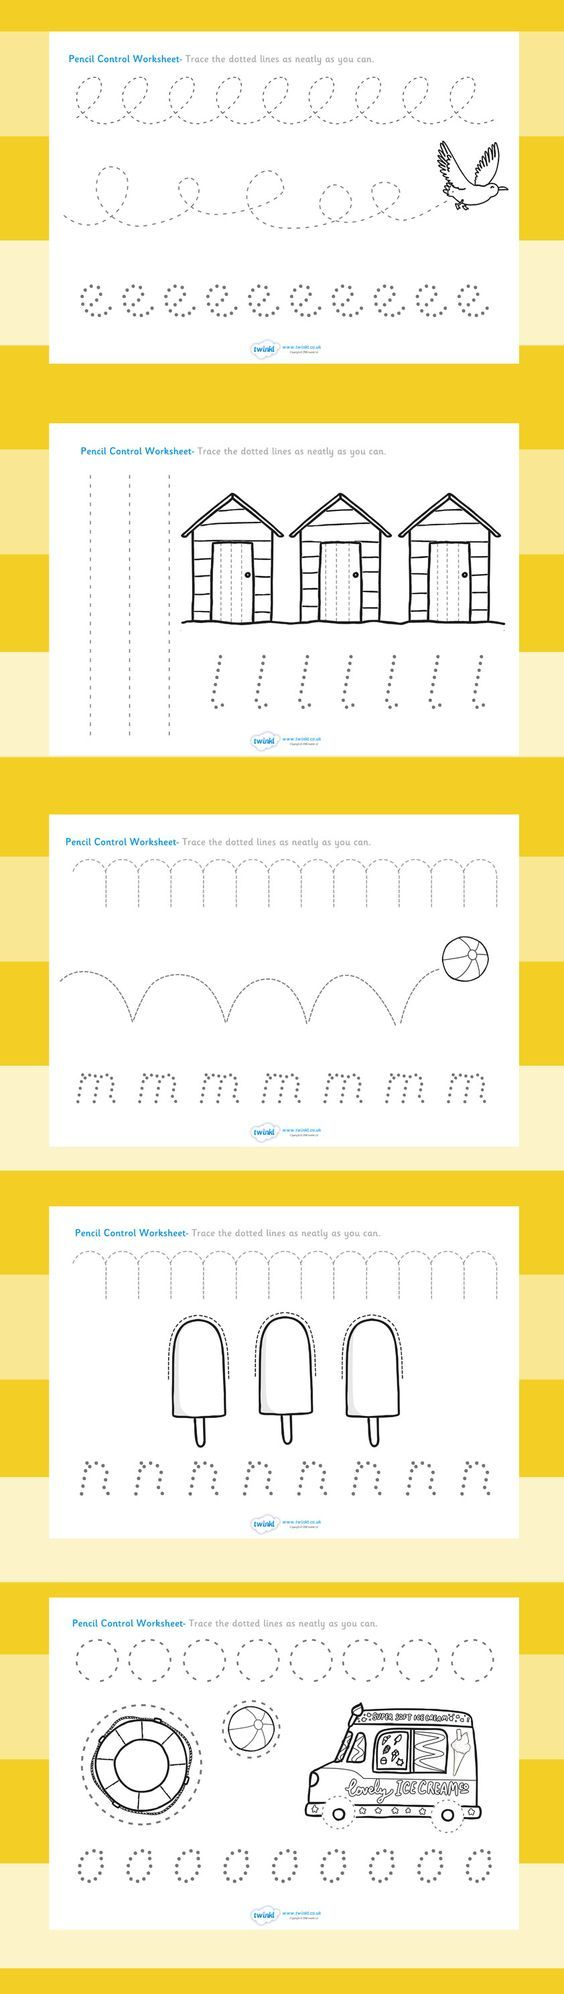 Worksheets Free Printable Handwriting Worksheets best 25 handwriting worksheets ideas on pinterest free line preschool freebie printable